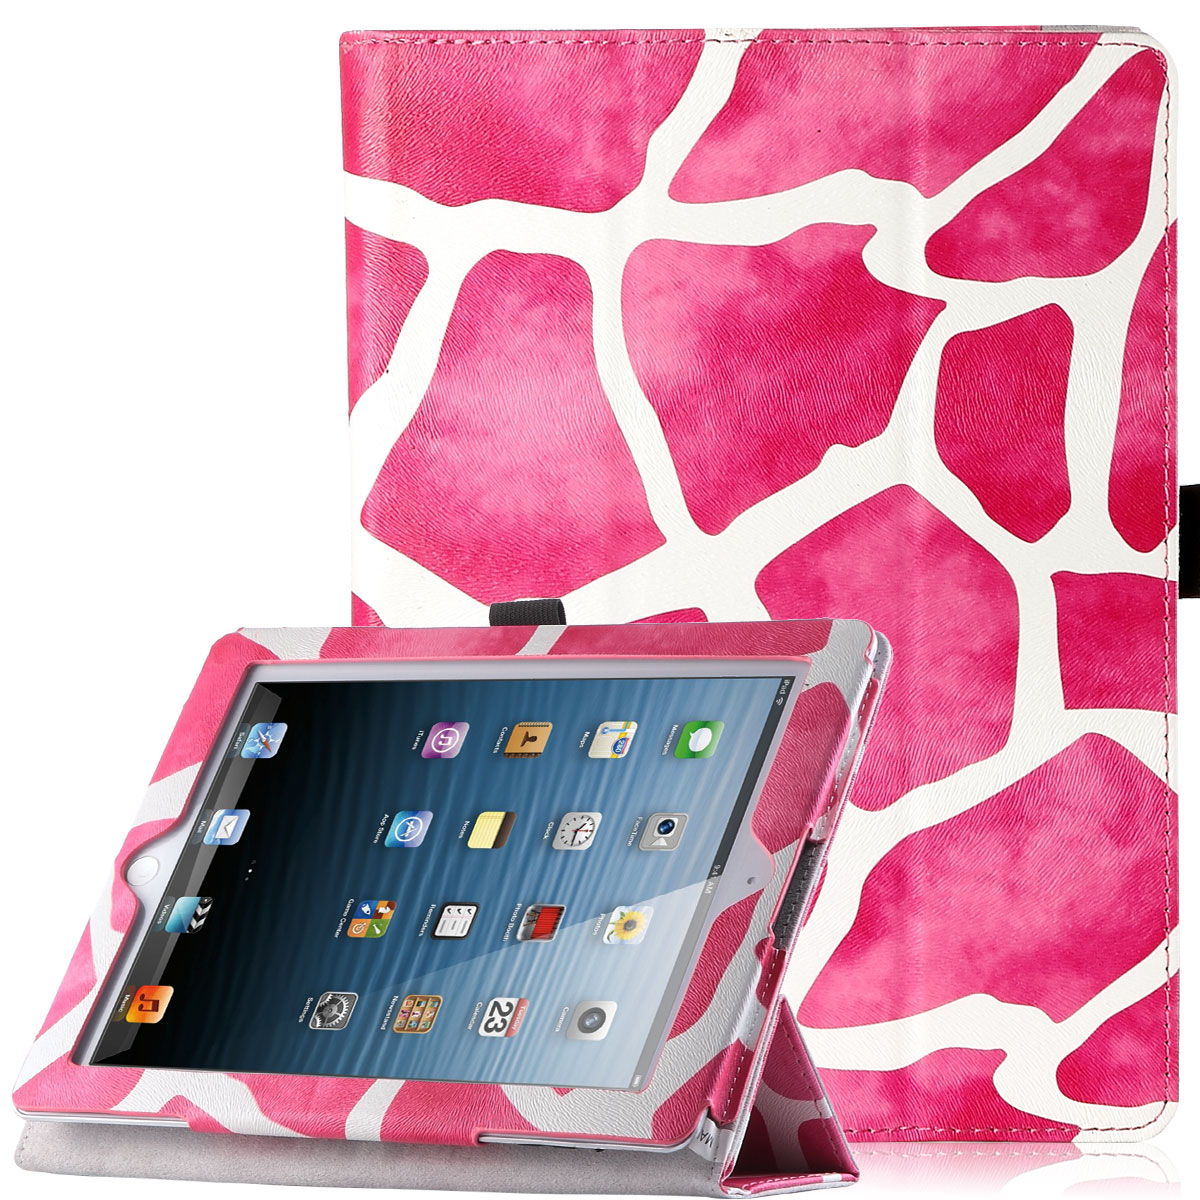 "iPad 4 Case,iPad 3 Case,iPad 2 Case ,ULAK Smart Cover Protective Shell with Auto Wake / Sleep + Fold Media Stand for Apple iPad 4 (9.7"" inch) 2012 Release"